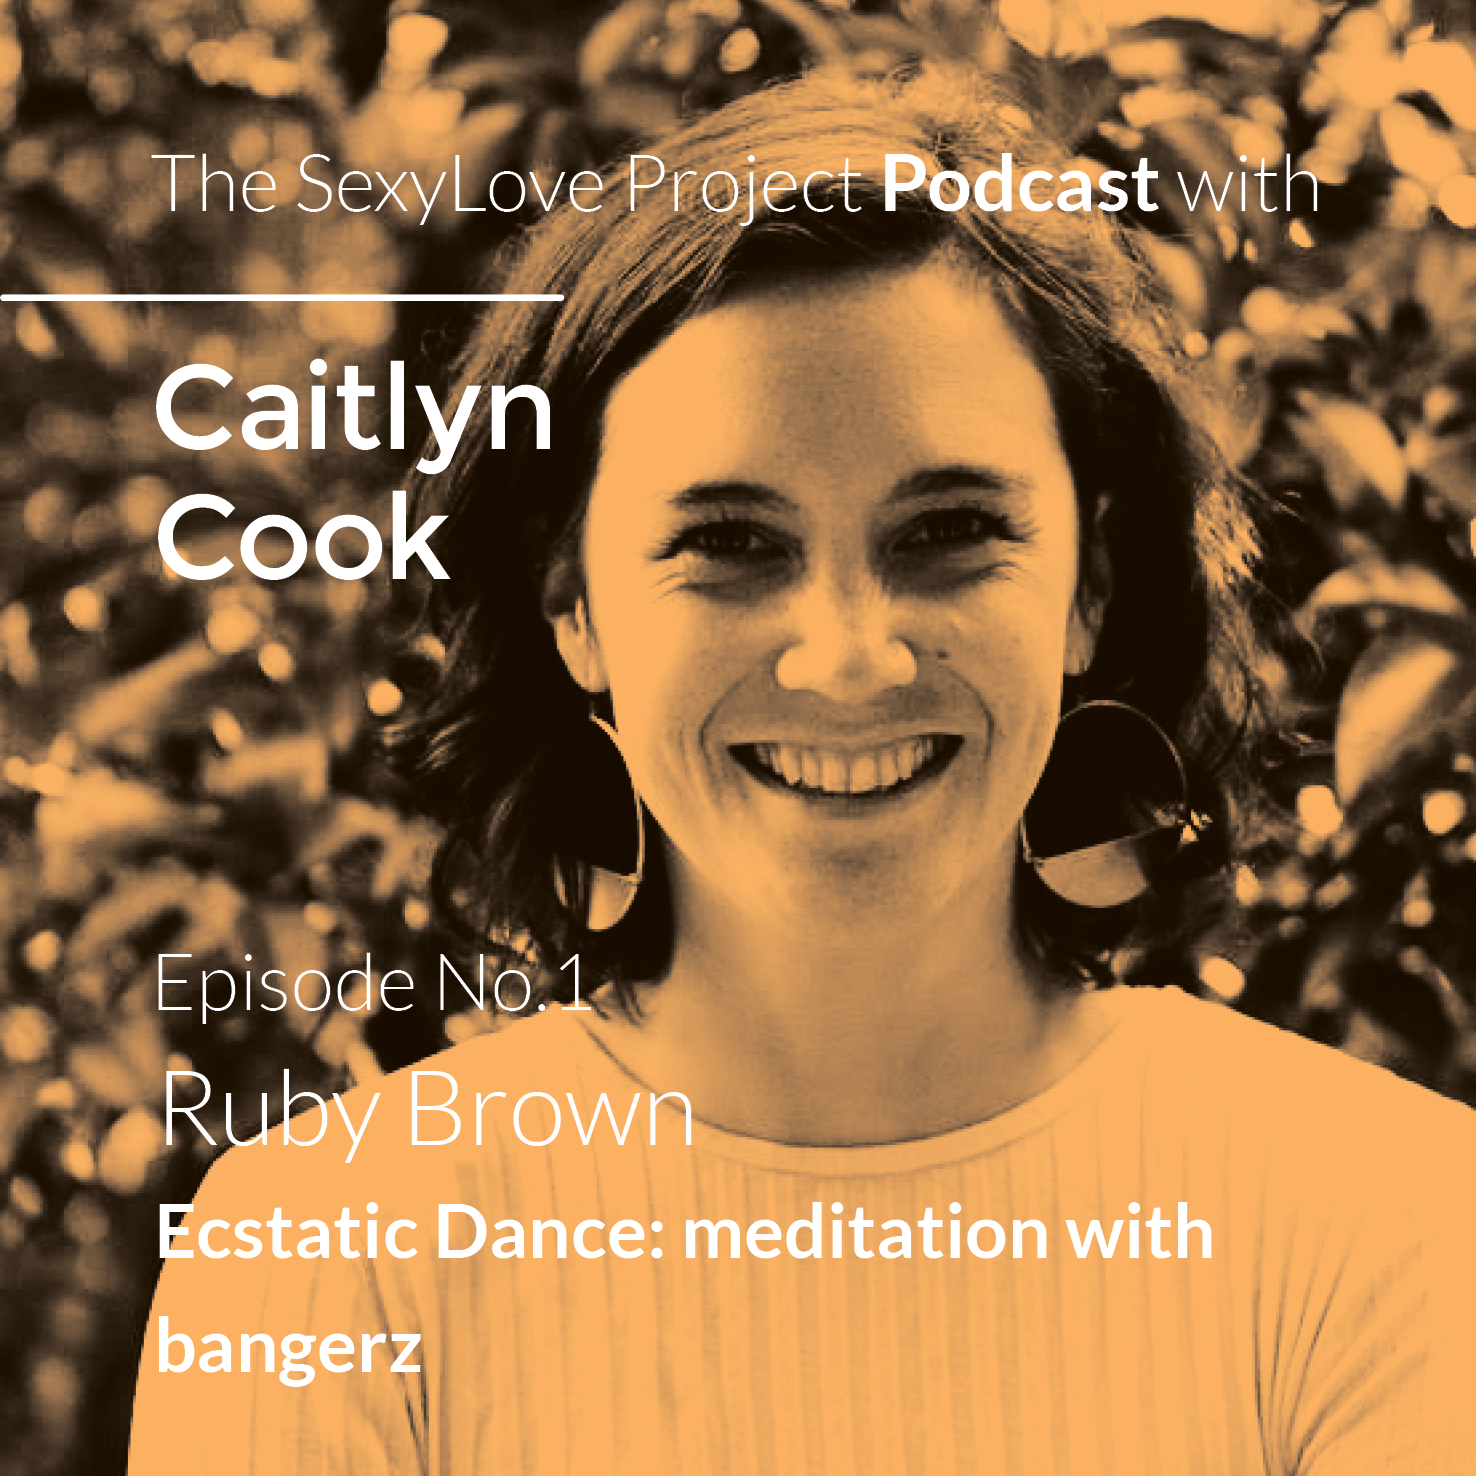 CaitlynCook_Podcasts_20JUN17_Yellow_Ep1.png